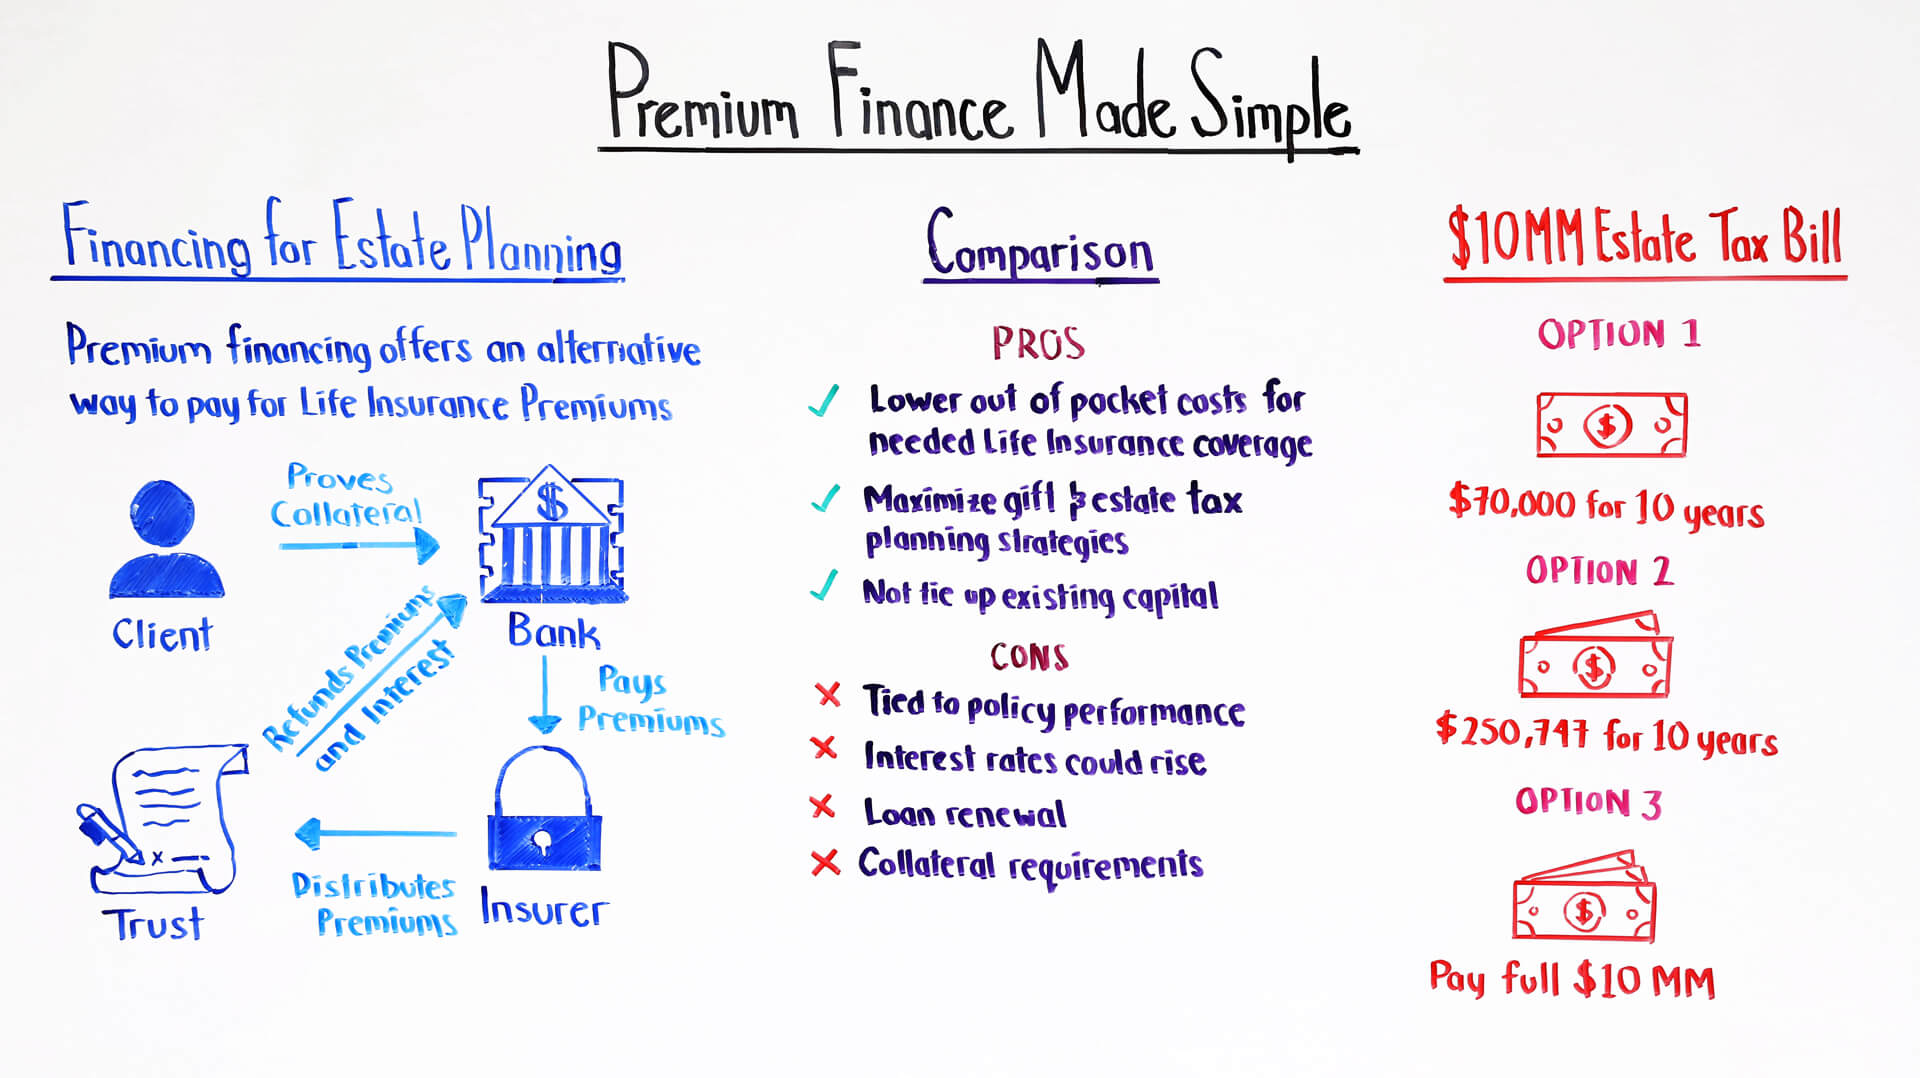 premium finance made simple